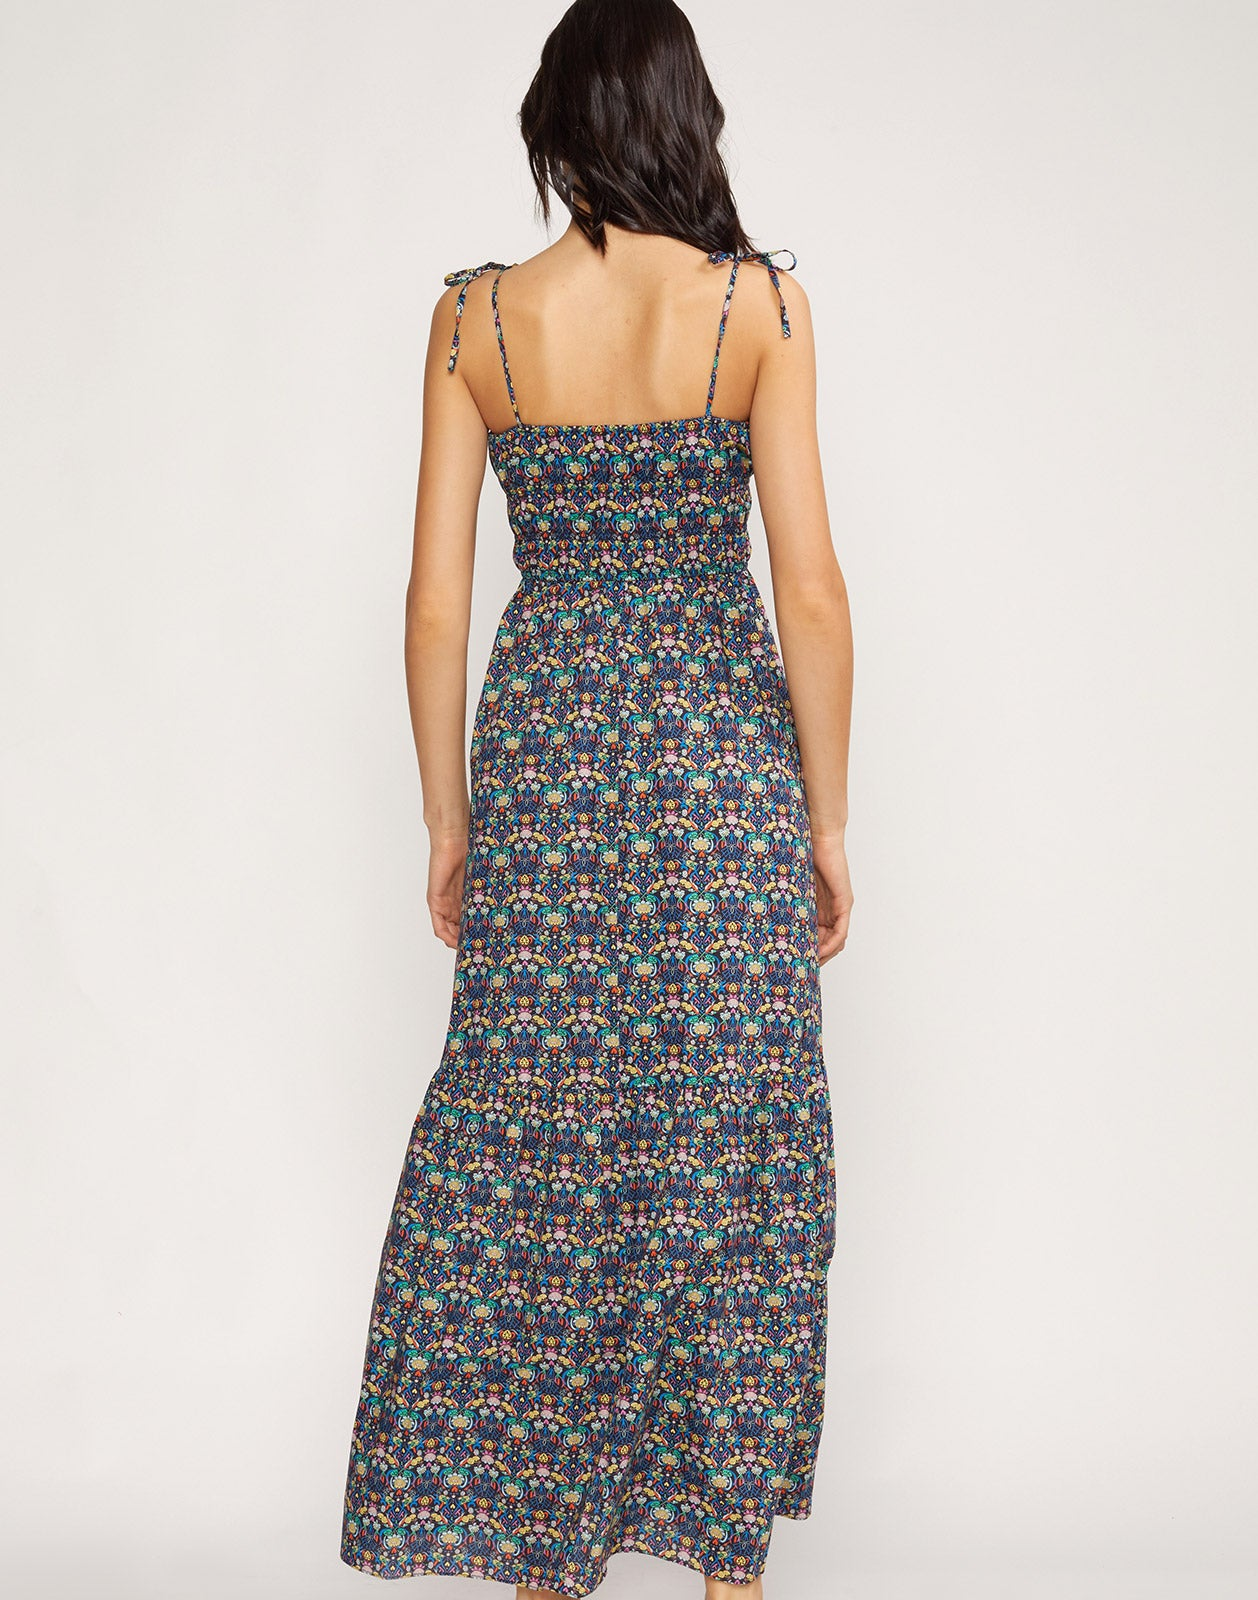 Full back view of model wearing Azores Smocked Maxi Dress.